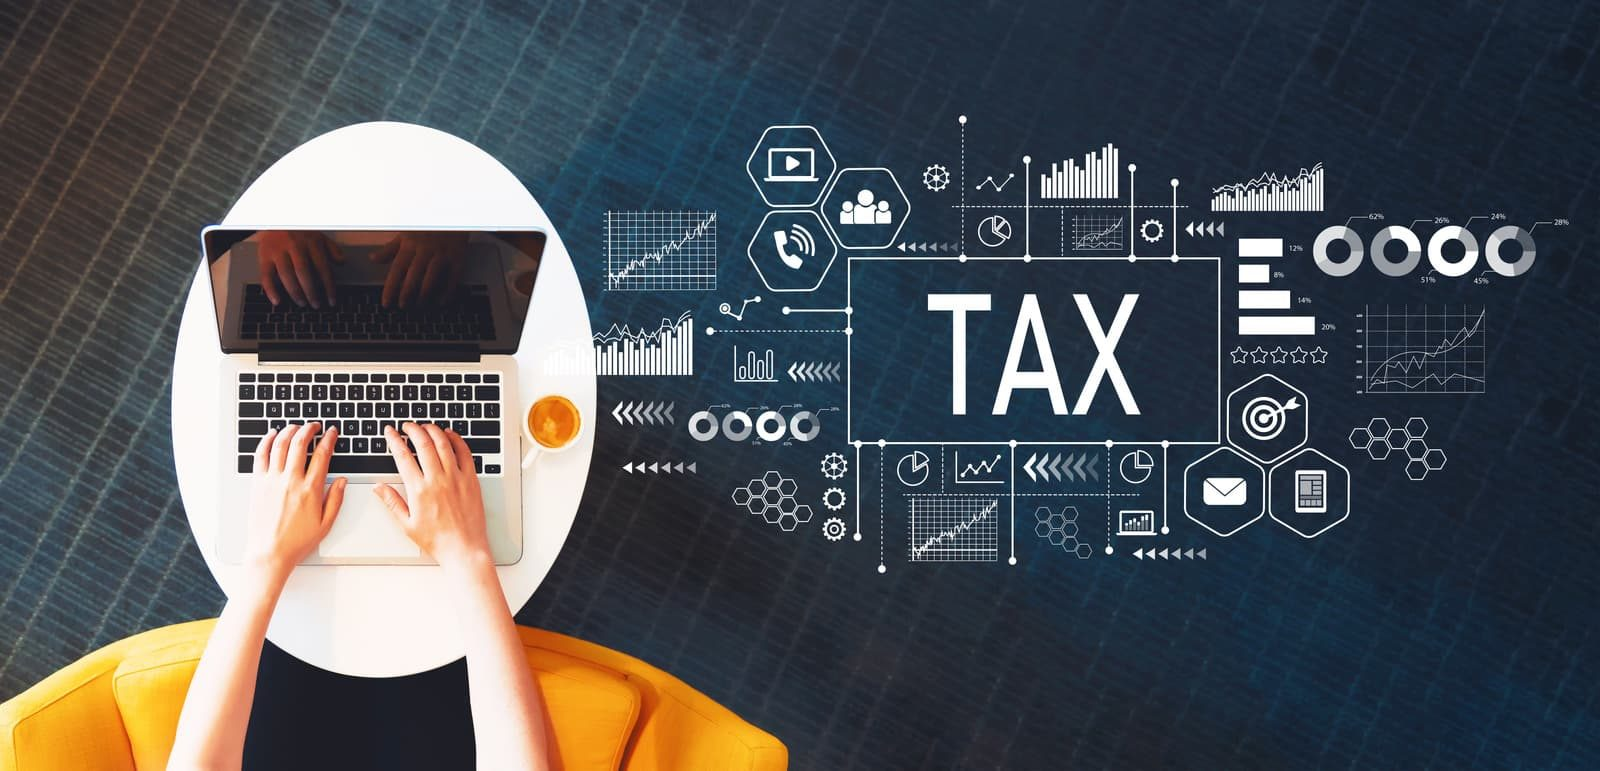 How to File Taxes for Free (Save Money $$$ With Free Tax Preparation)